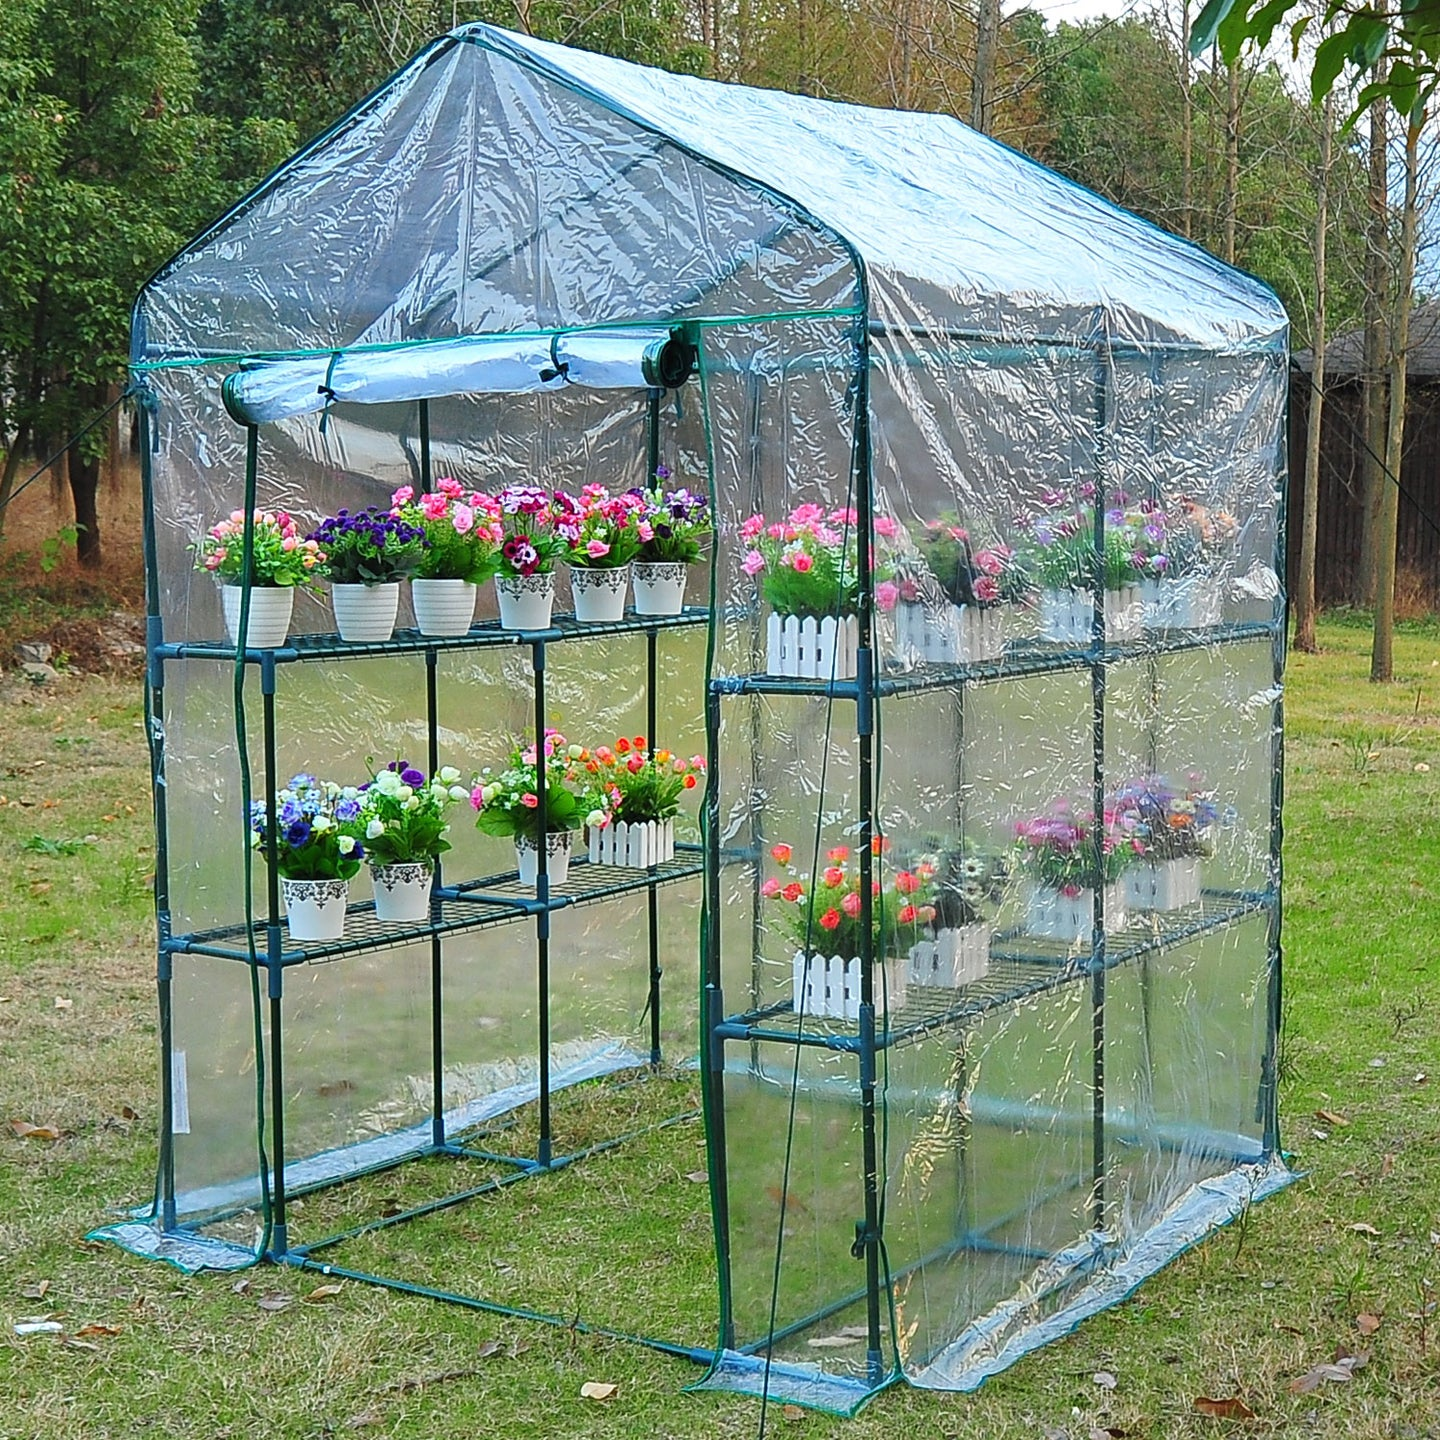 Outsunny Steel Frame Greenhouse Steel Frame, 2 Shelves